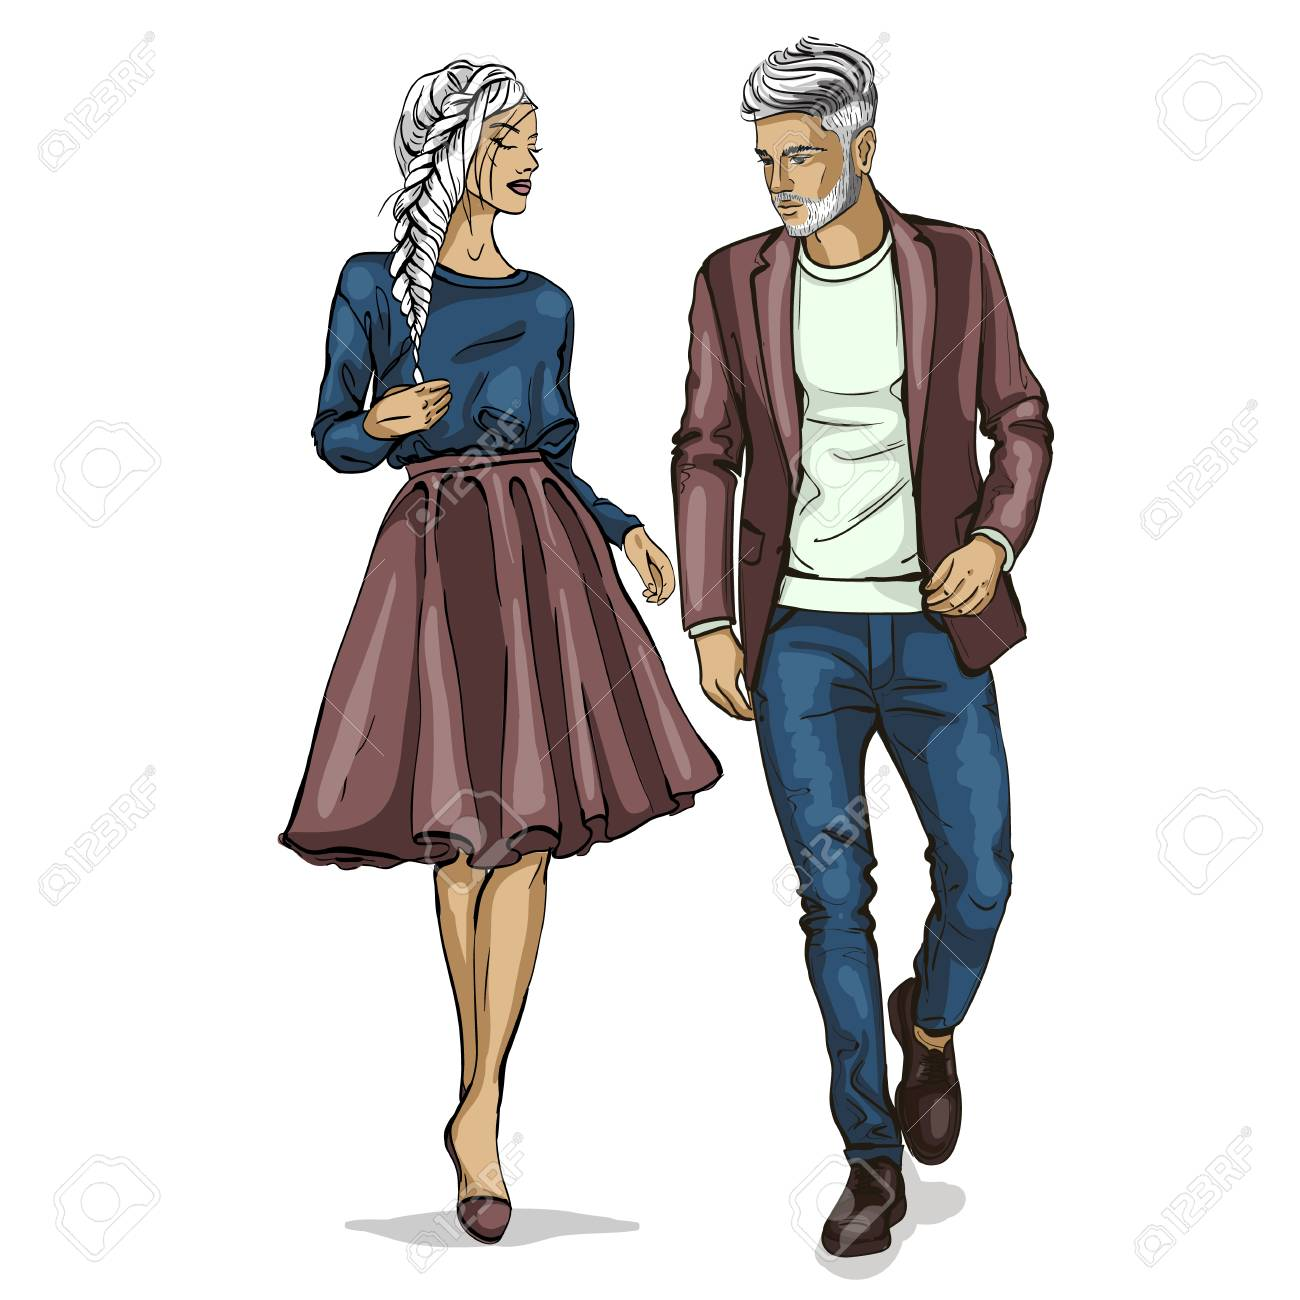 Man and a woman fashion models icon. - 91755159